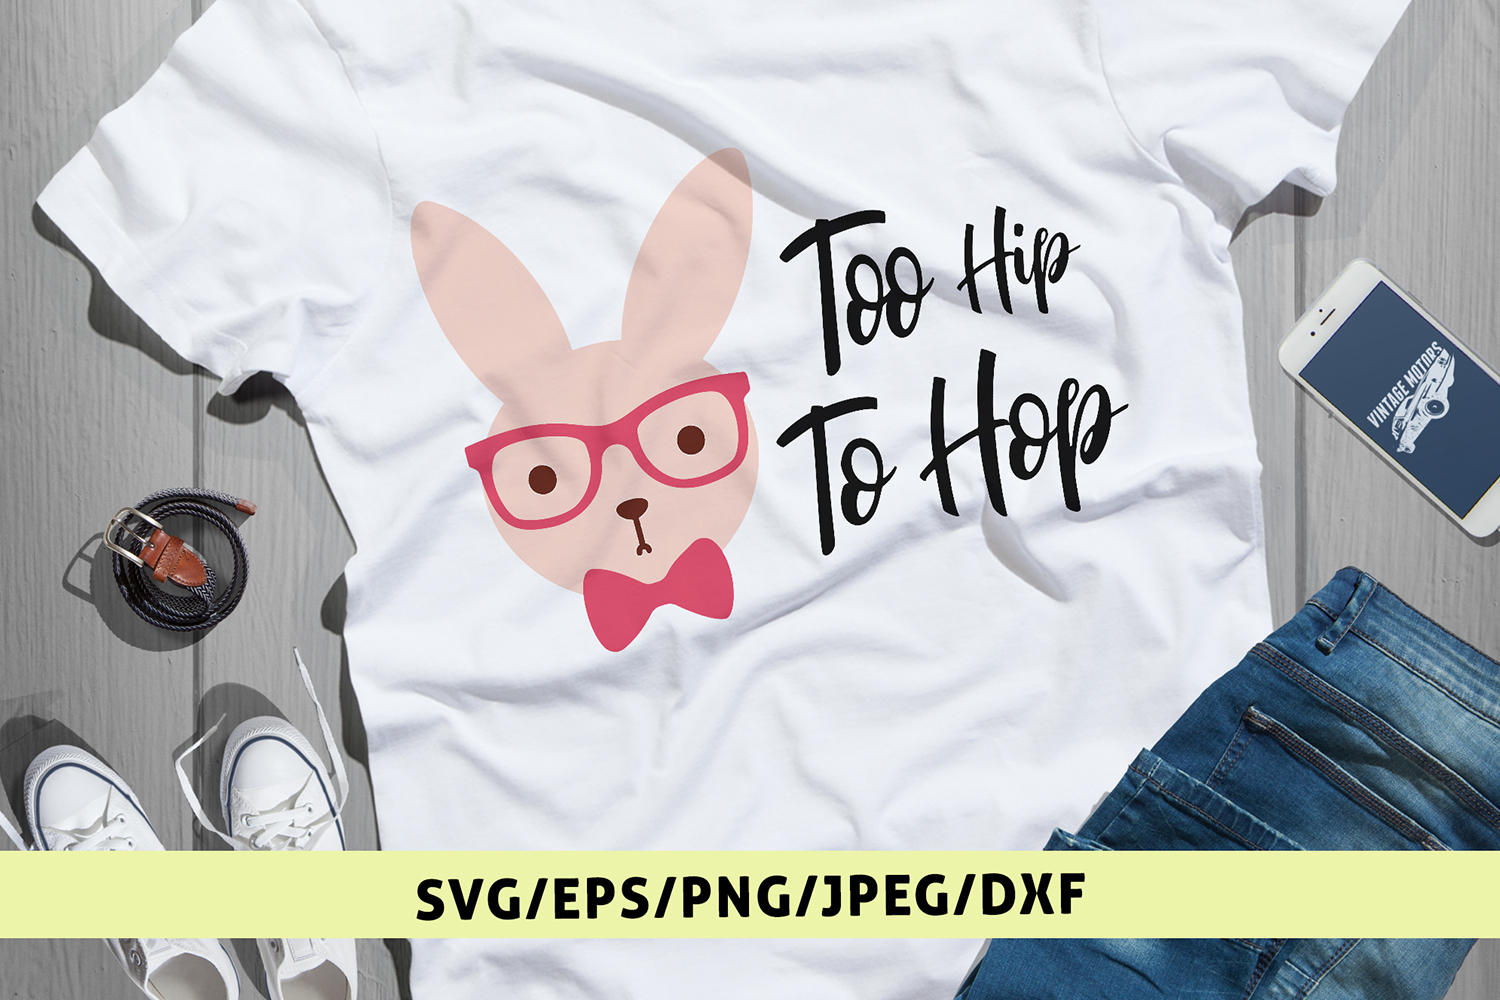 Too Hip To Hop - Easter SVG EPS DXF PNG Cutting Files example image 1